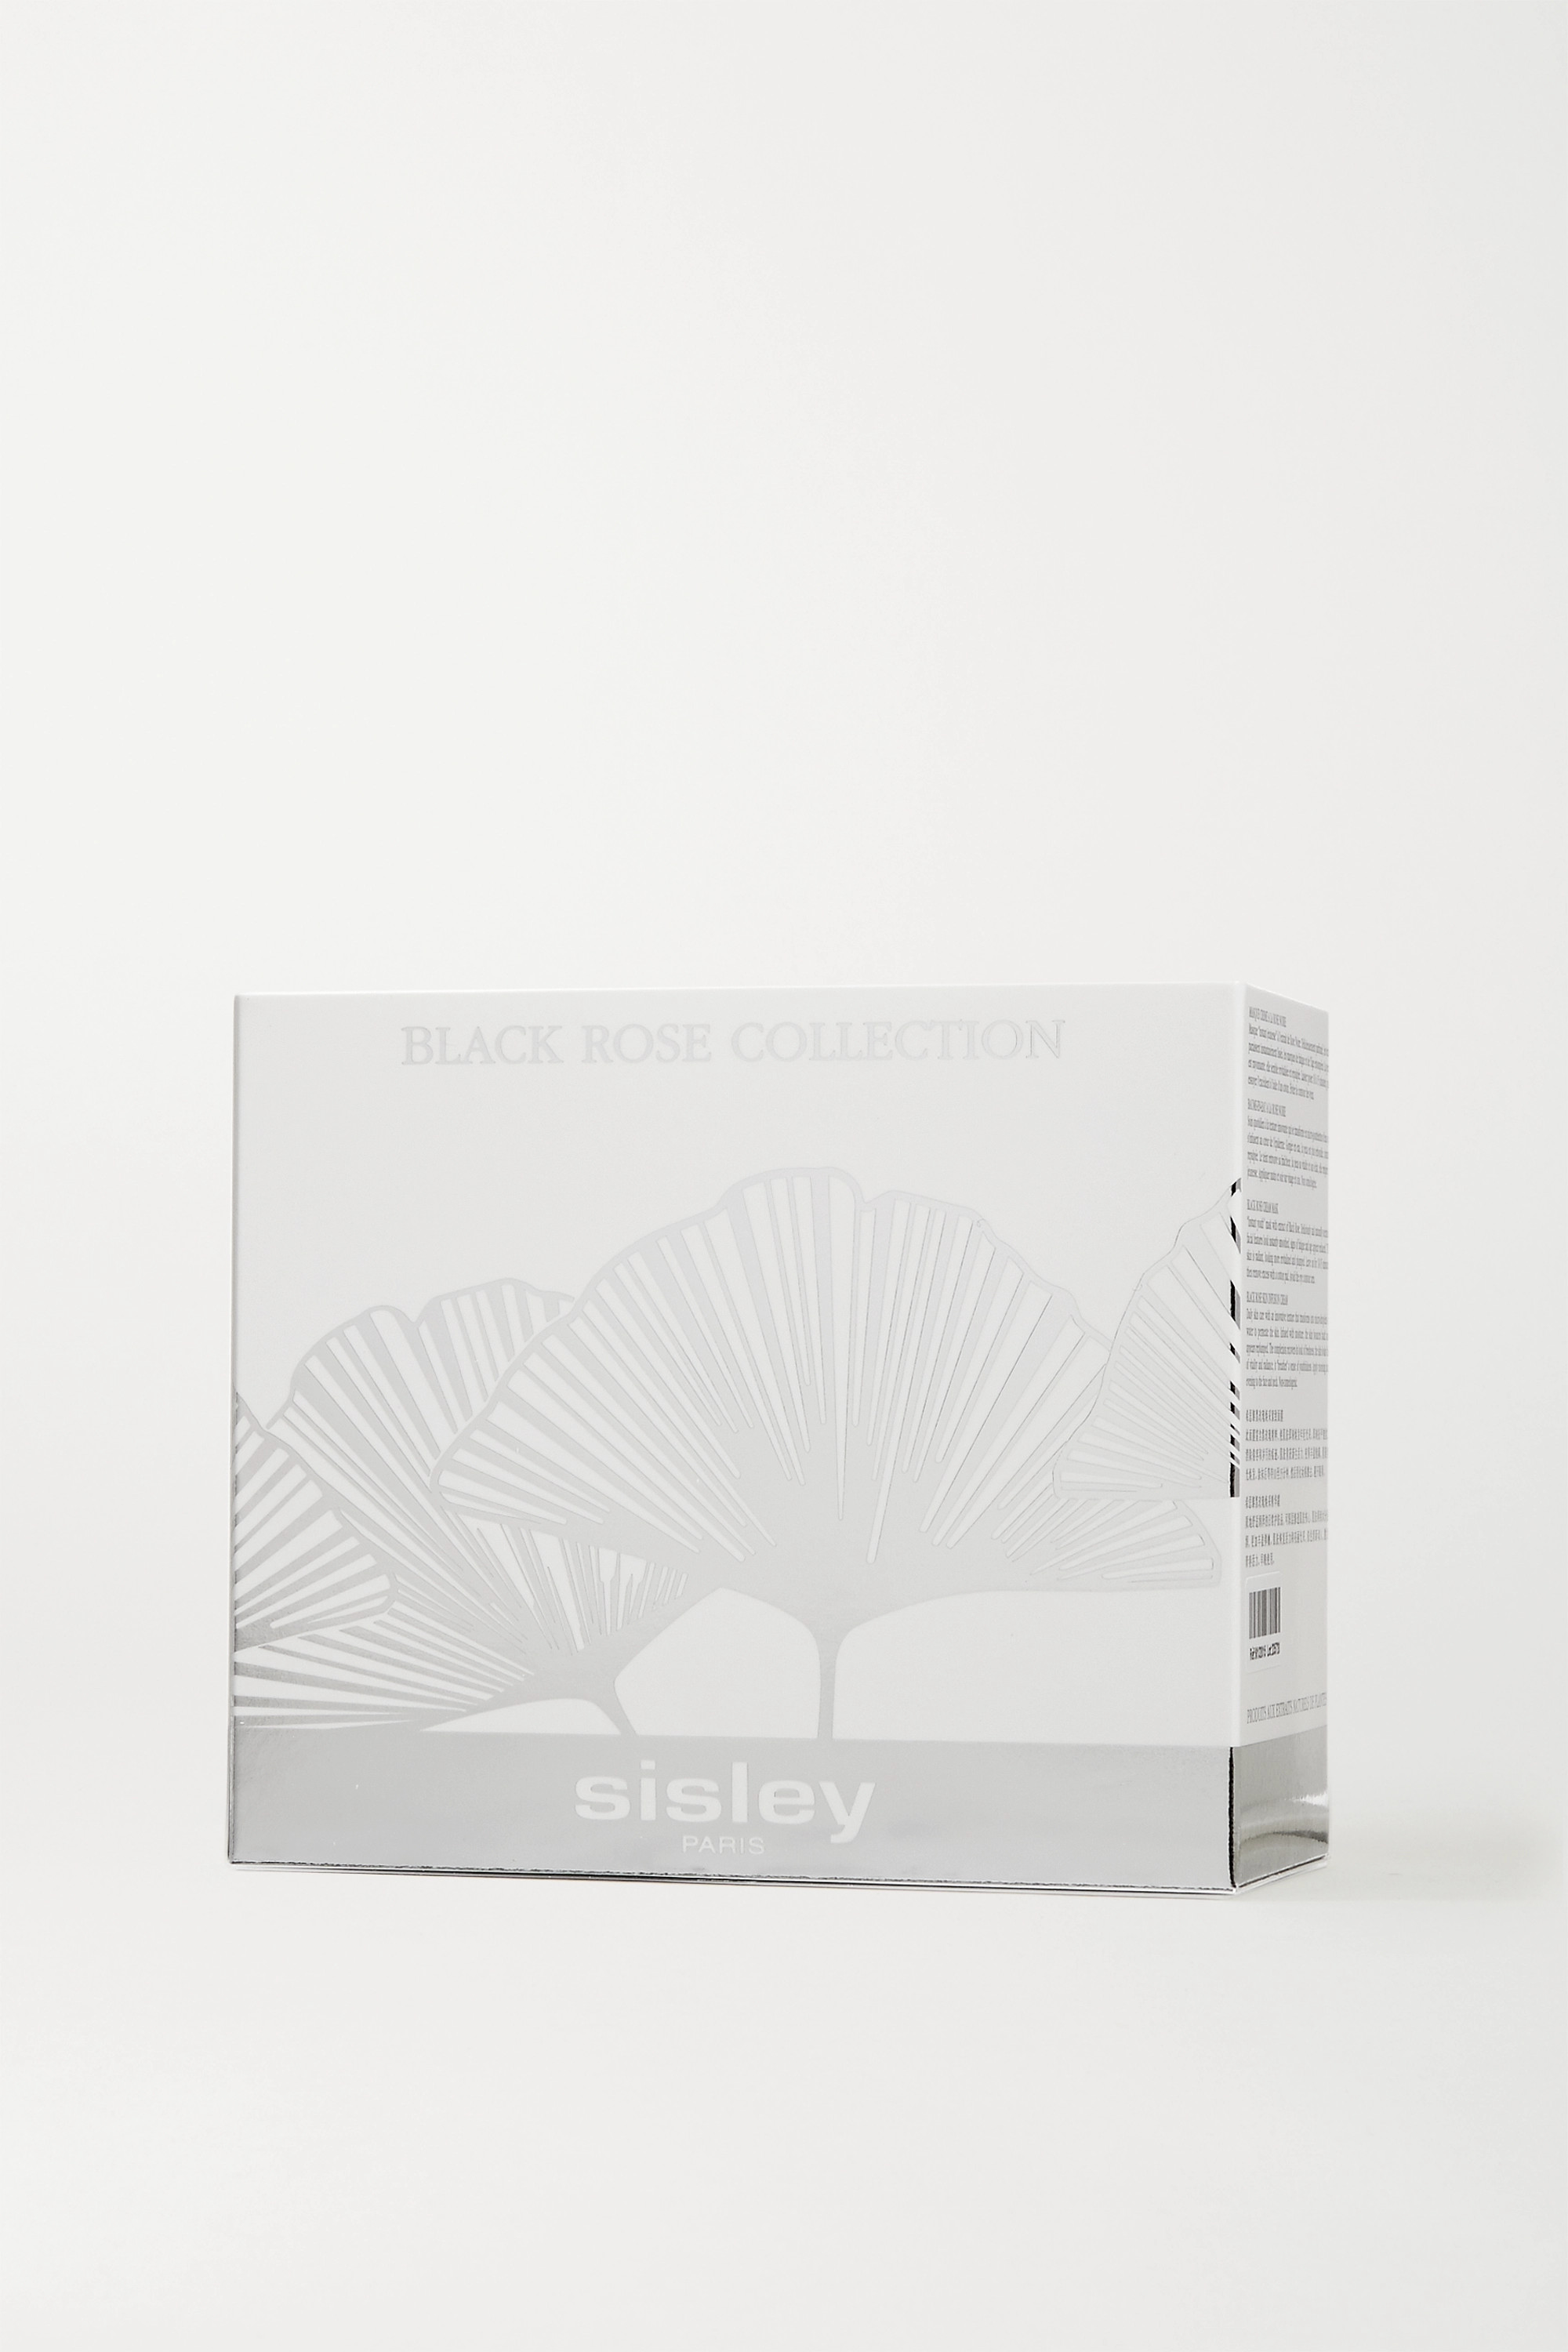 Sisley Black Rose Collection